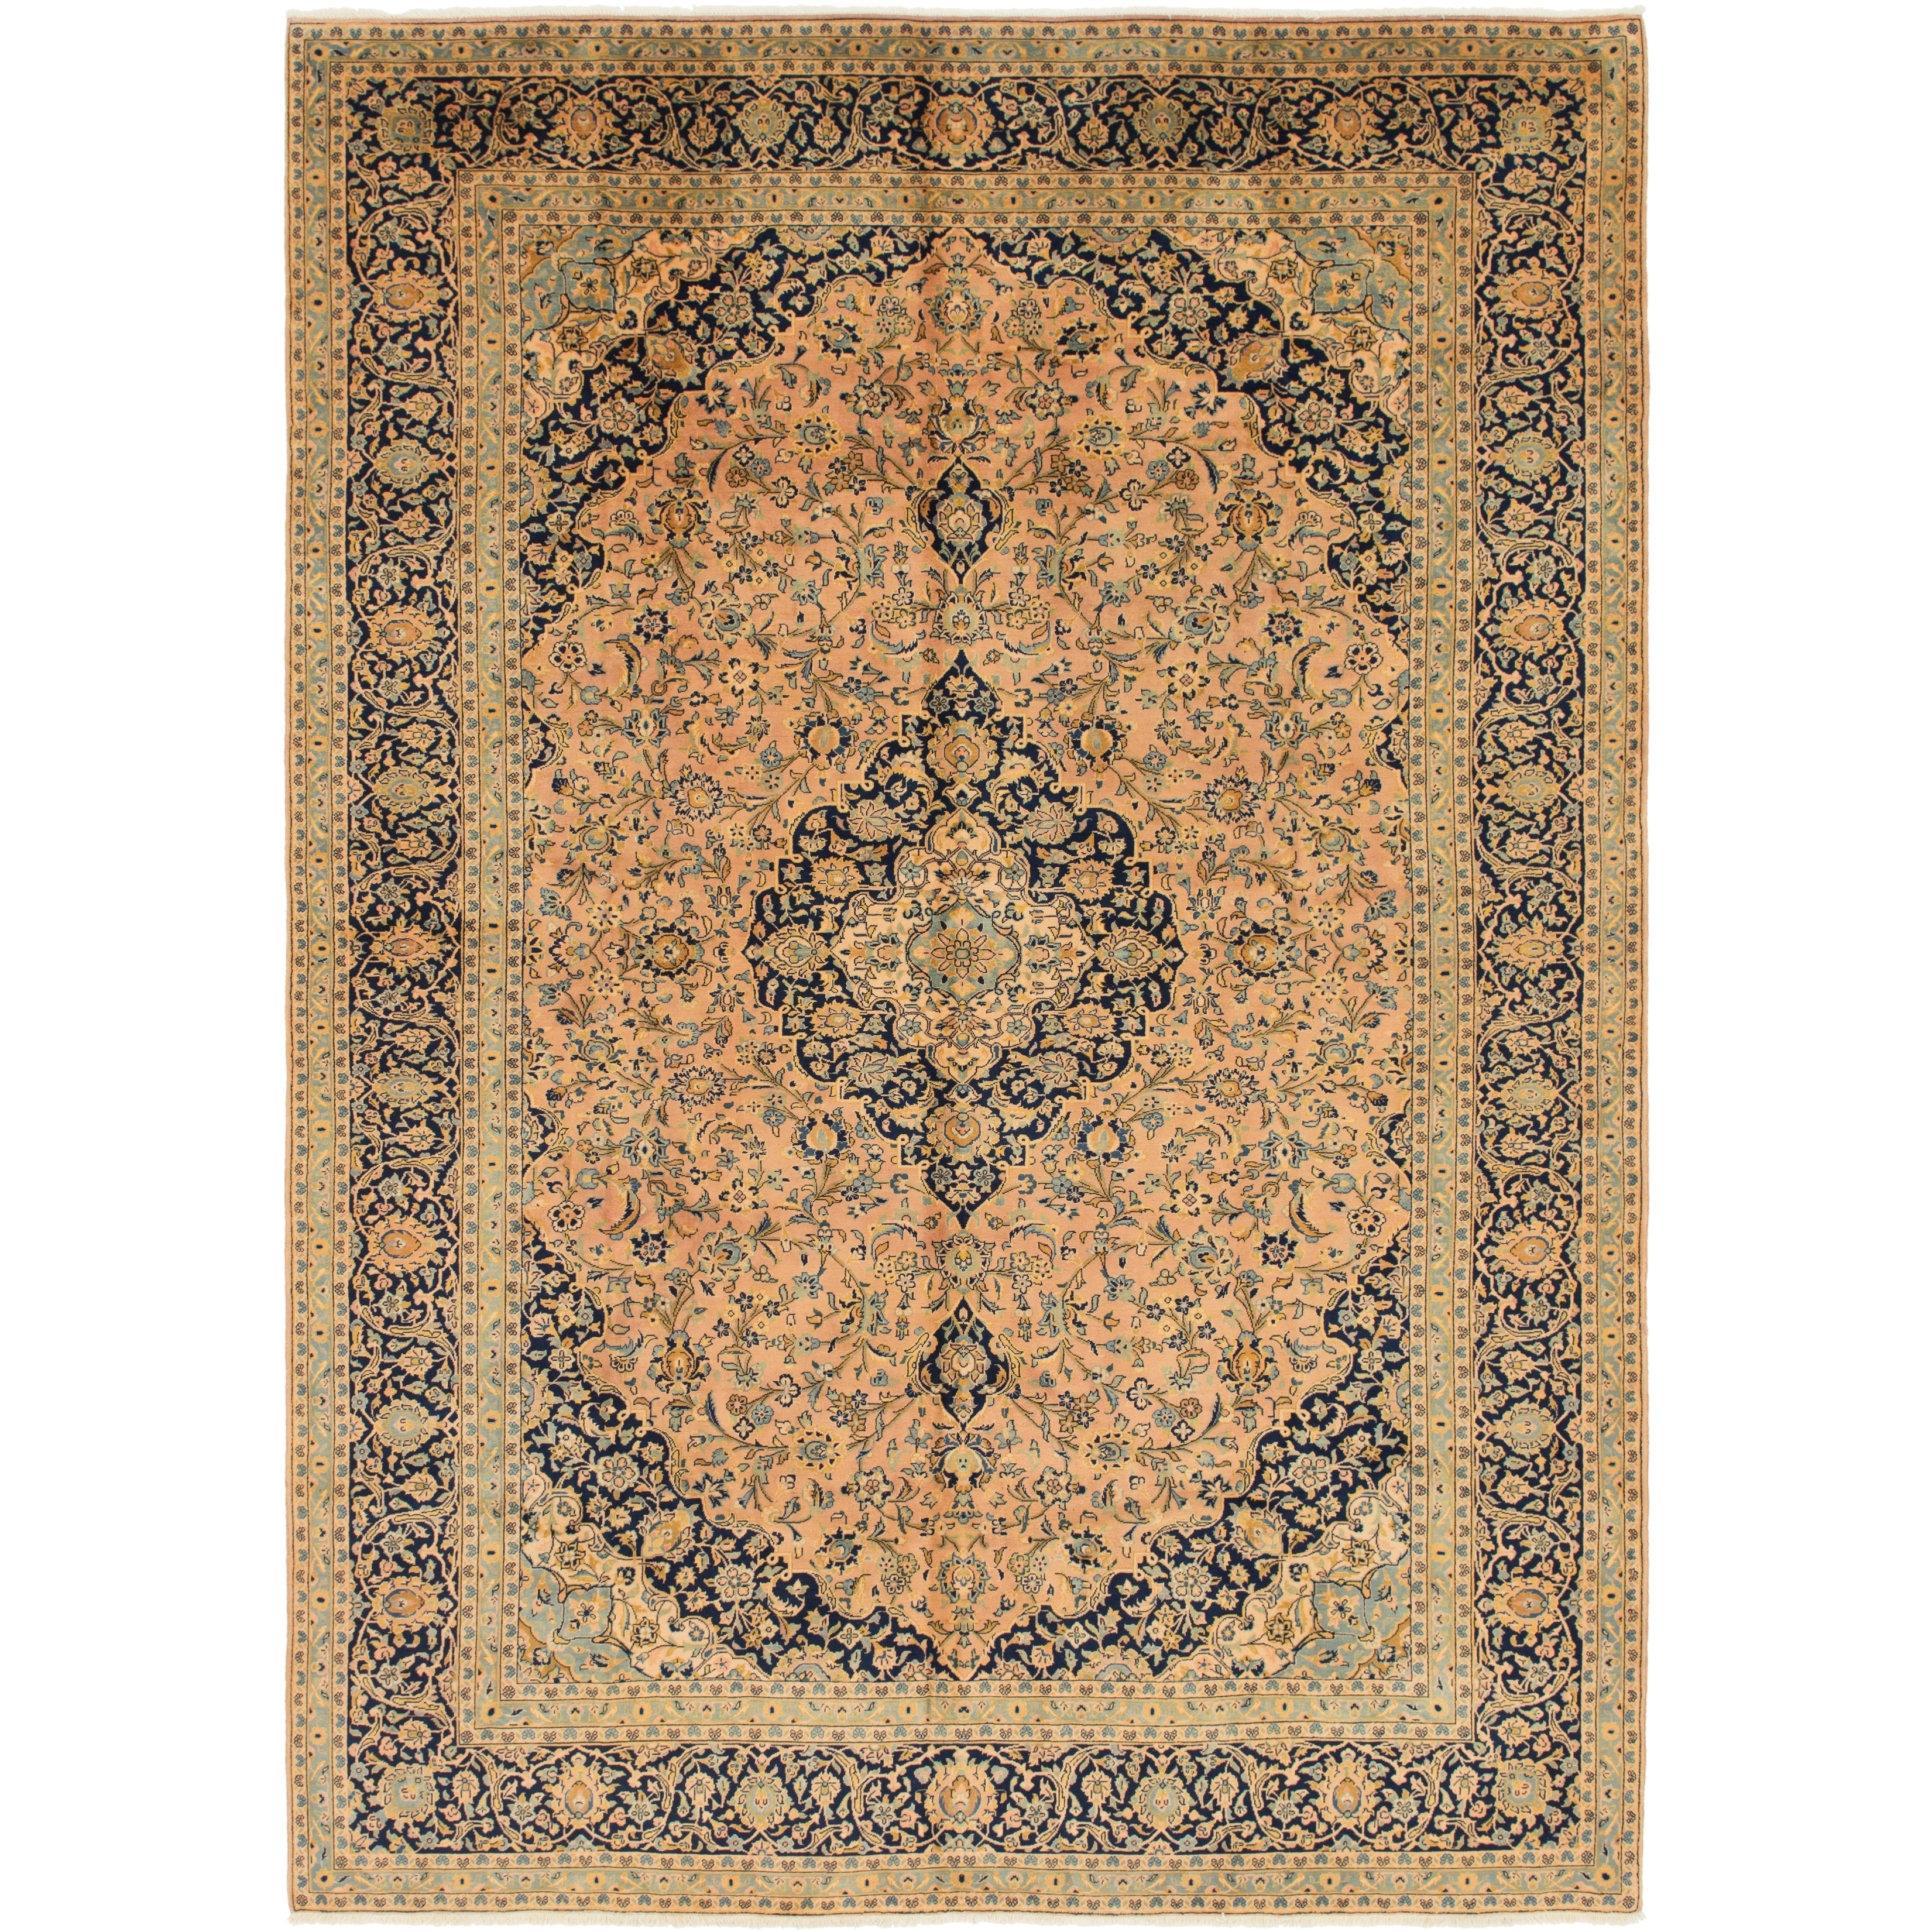 Hand Knotted Kashan Semi Antique Wool Area Rug - 9 6 x 13 6 (Orange - 9 6 x 13 6)